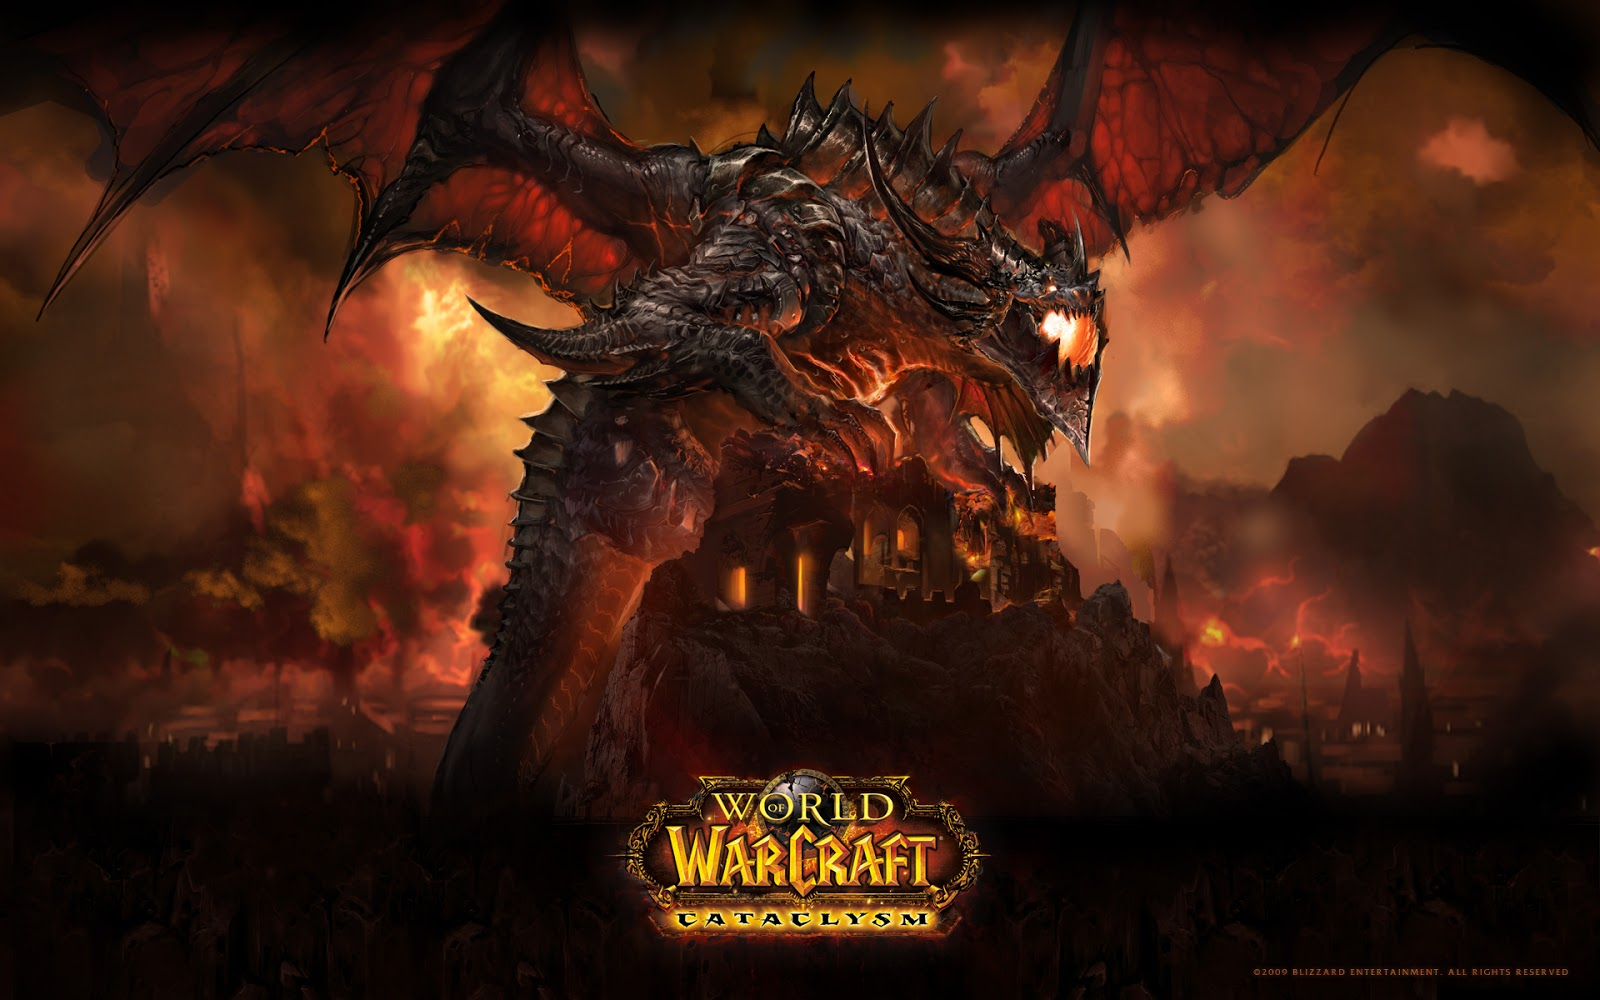 http://3.bp.blogspot.com/_Gq1jO6iuU2U/TSj1Eeb10fI/AAAAAAAAHWY/8OEd8mBfzc4/s1600/World%20of%20Warcraft-%20Cataclysm%20Wallpapers.jpg